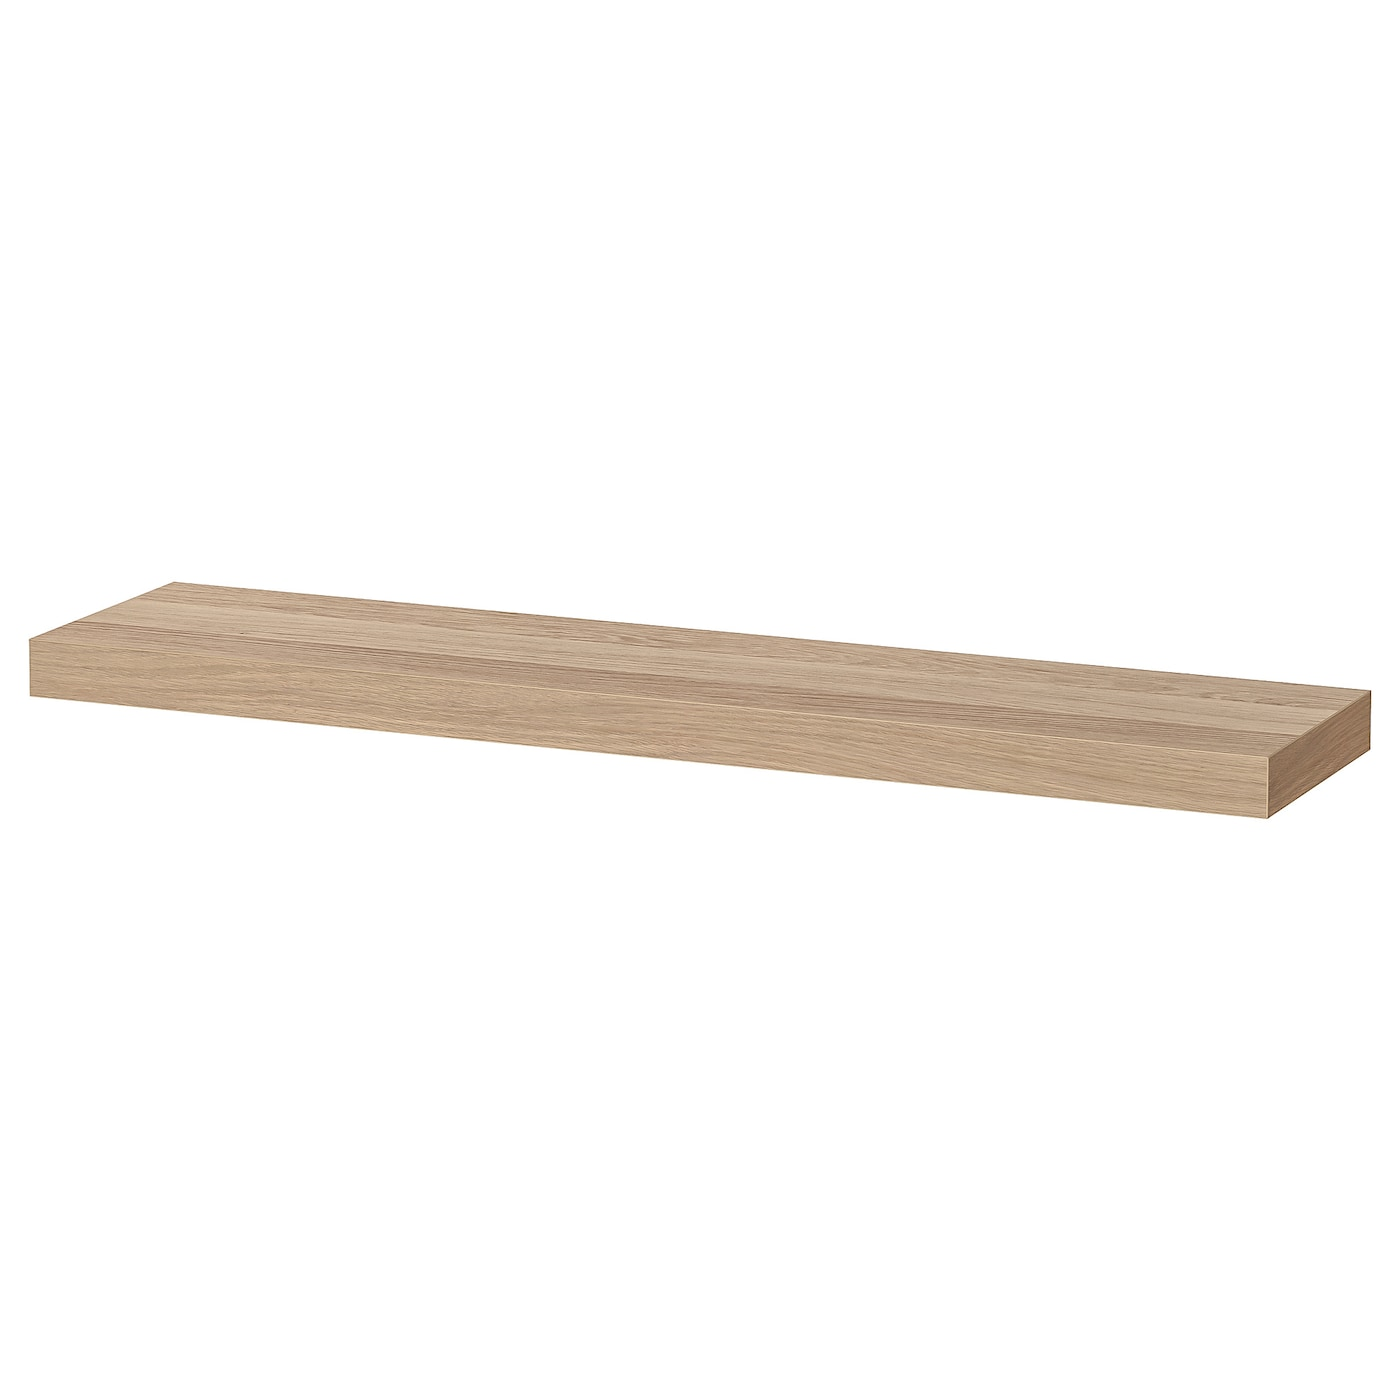 Ikea LACK Wall shelf, white stained oak effect43 1/4x10 1/4